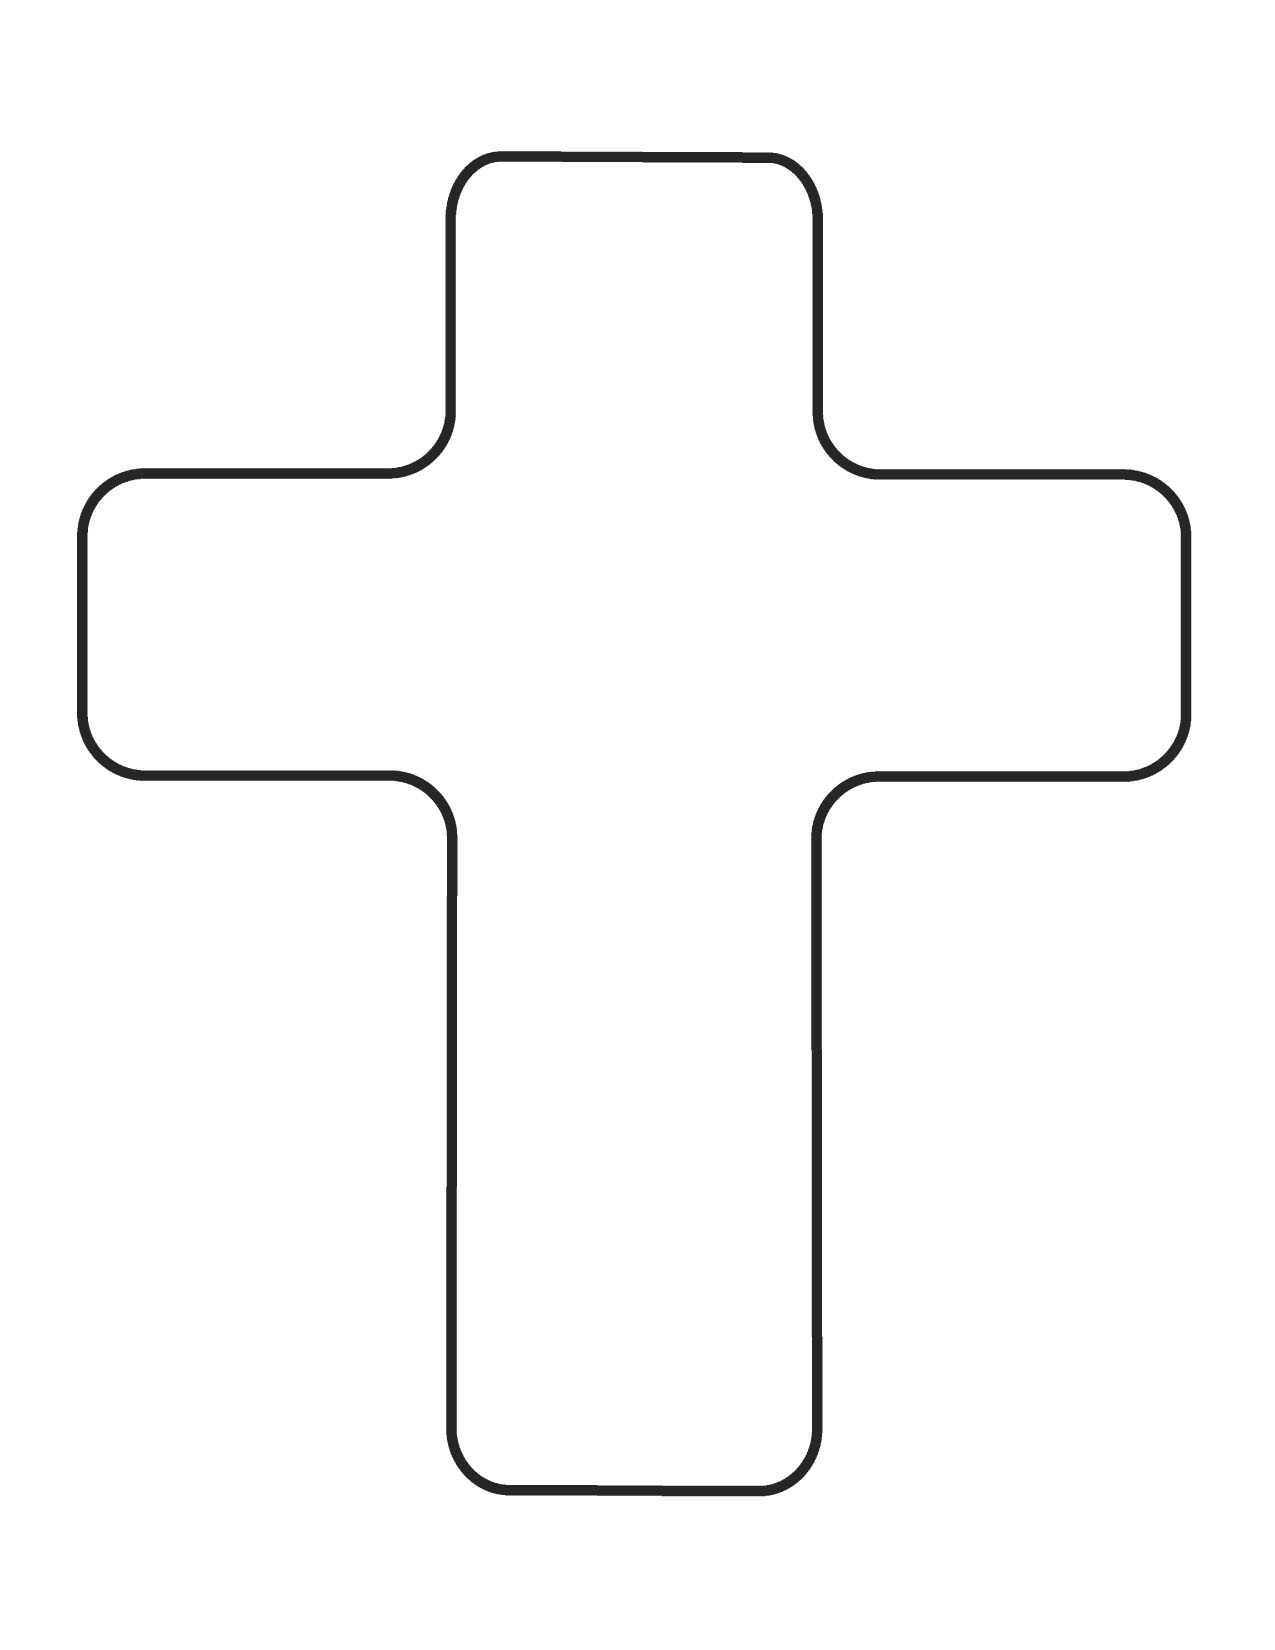 Free Images Of Crosses Free, Download Free Clip Art, Free Clip Art - Free Printable Cross